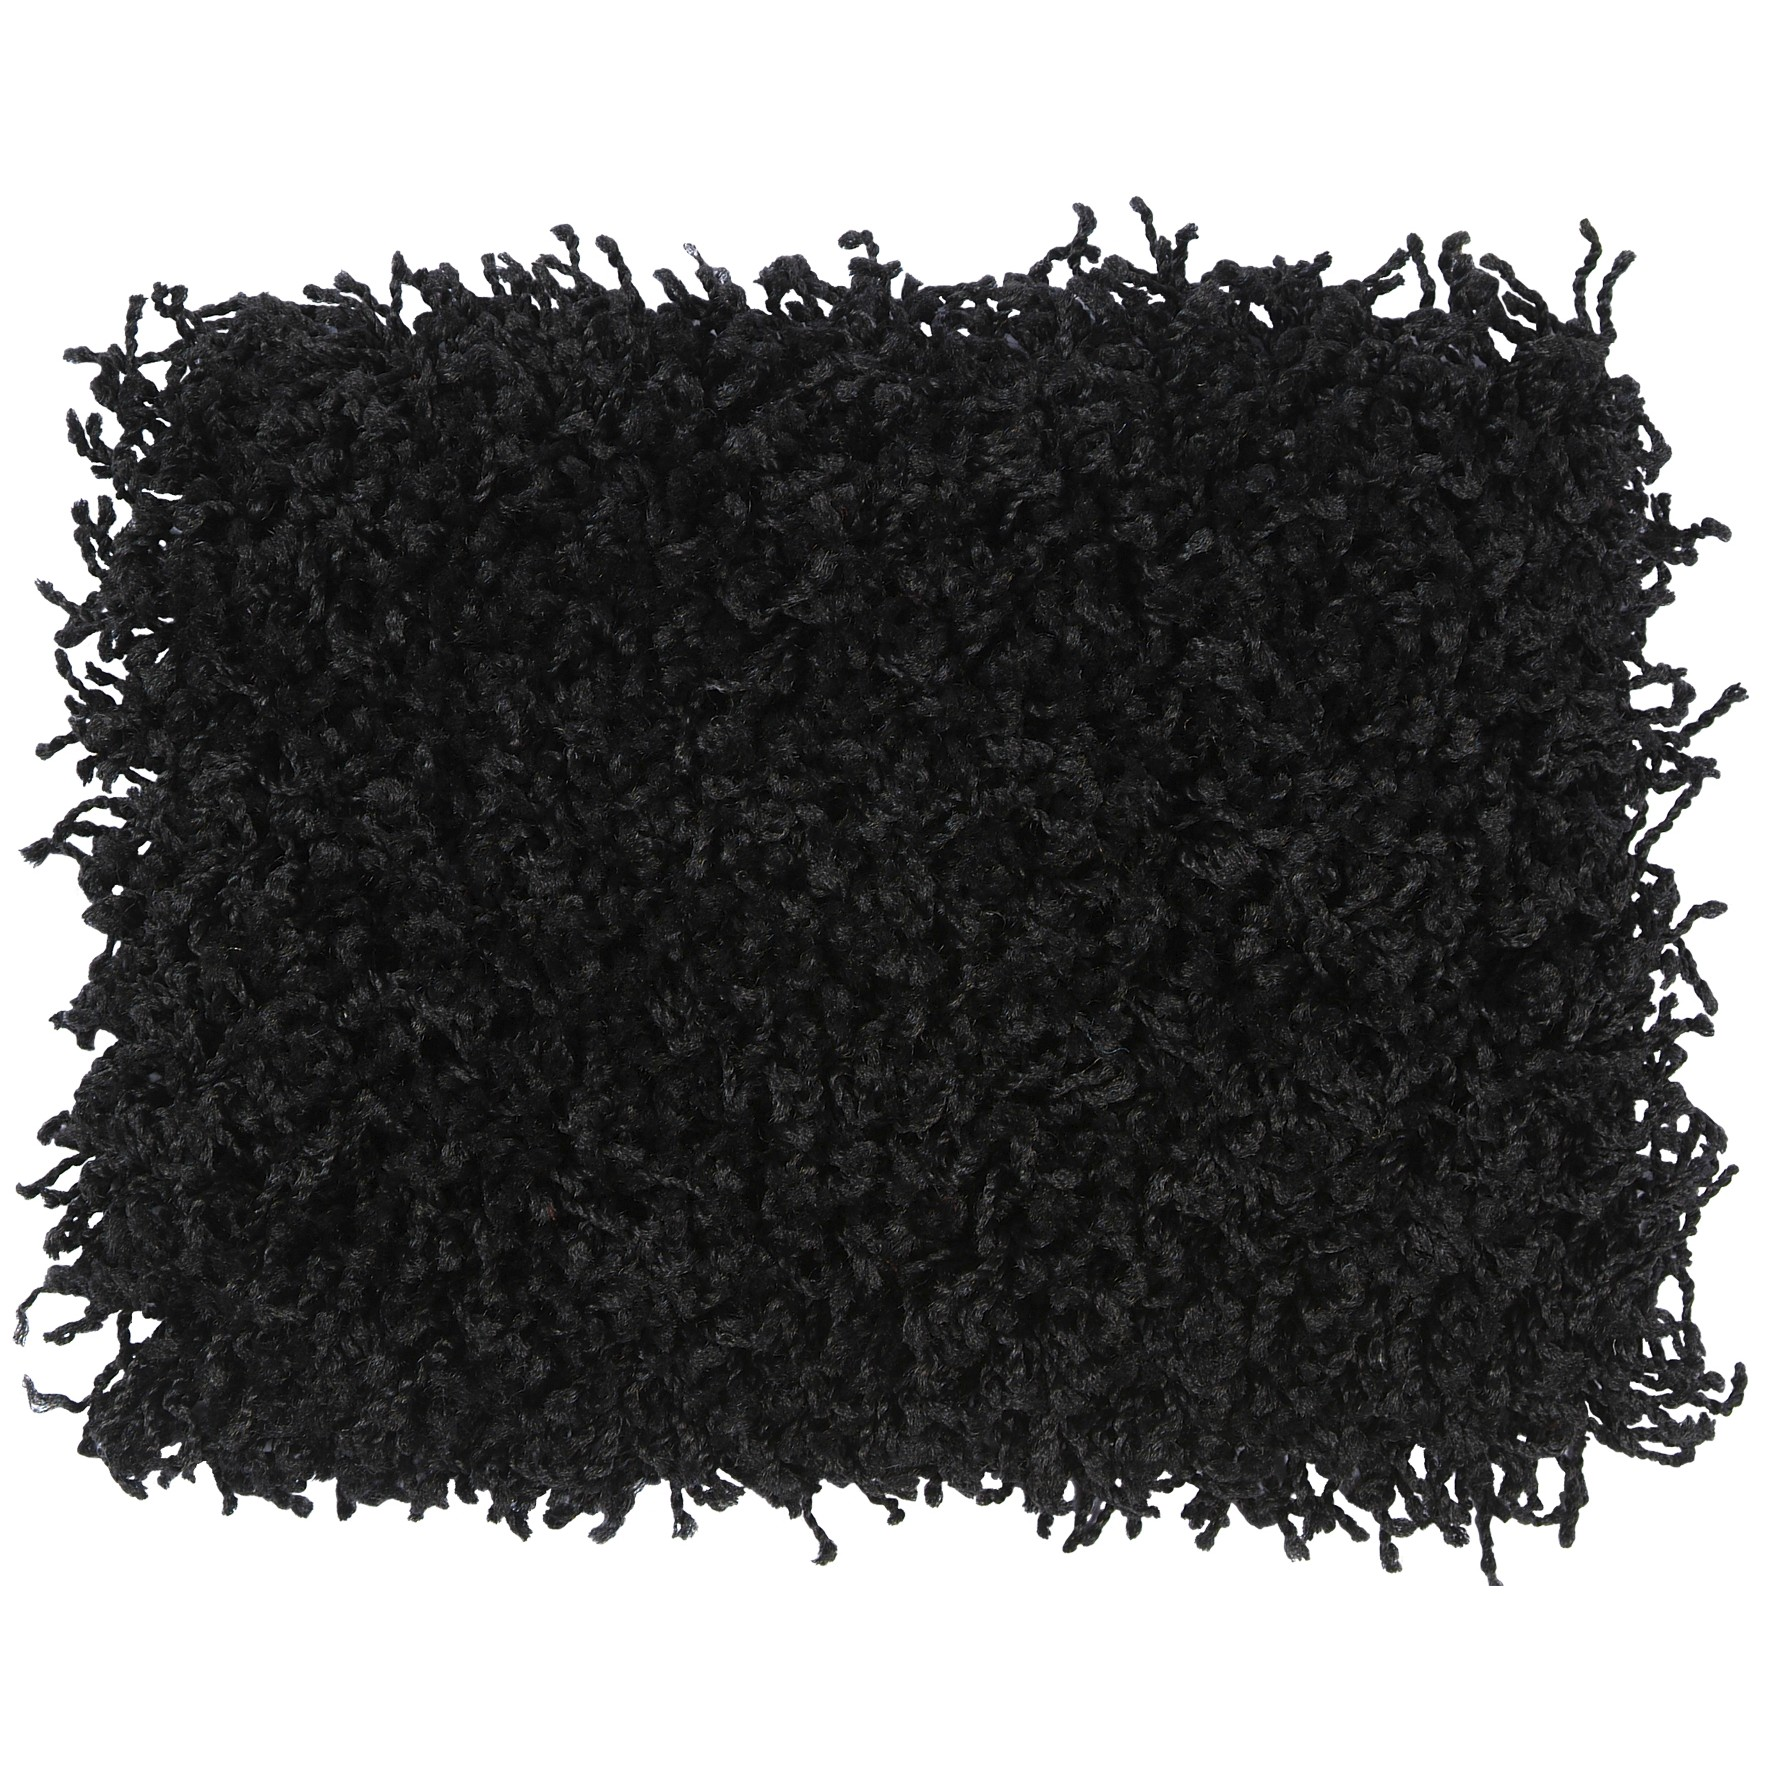 Tapete Tufting Clemant 50x100cm Preto - Tapetes SCarlos